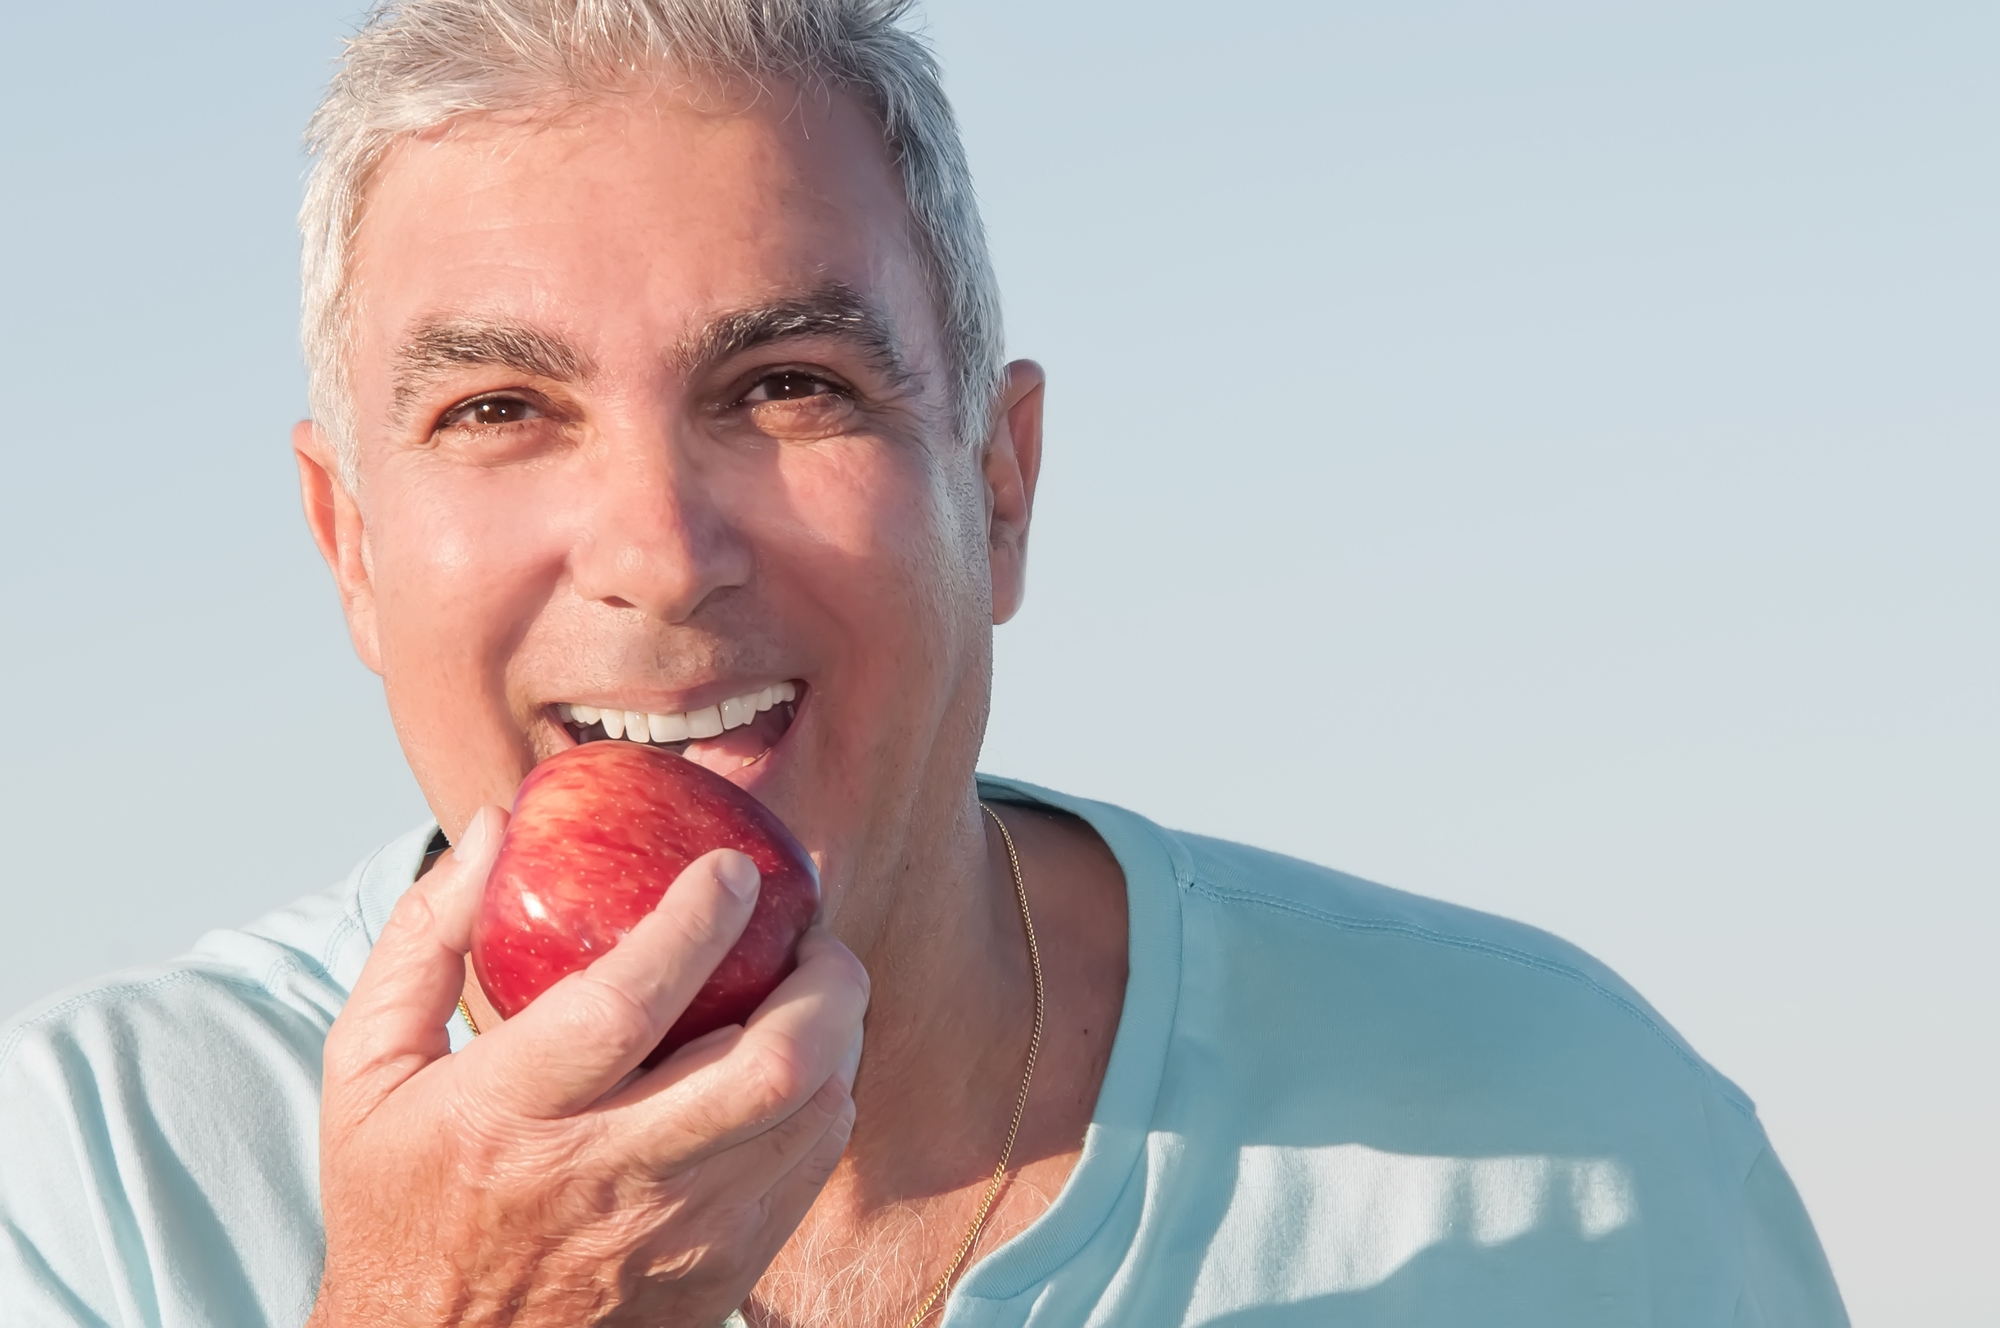 Who offers dental implants in Coral Springs?